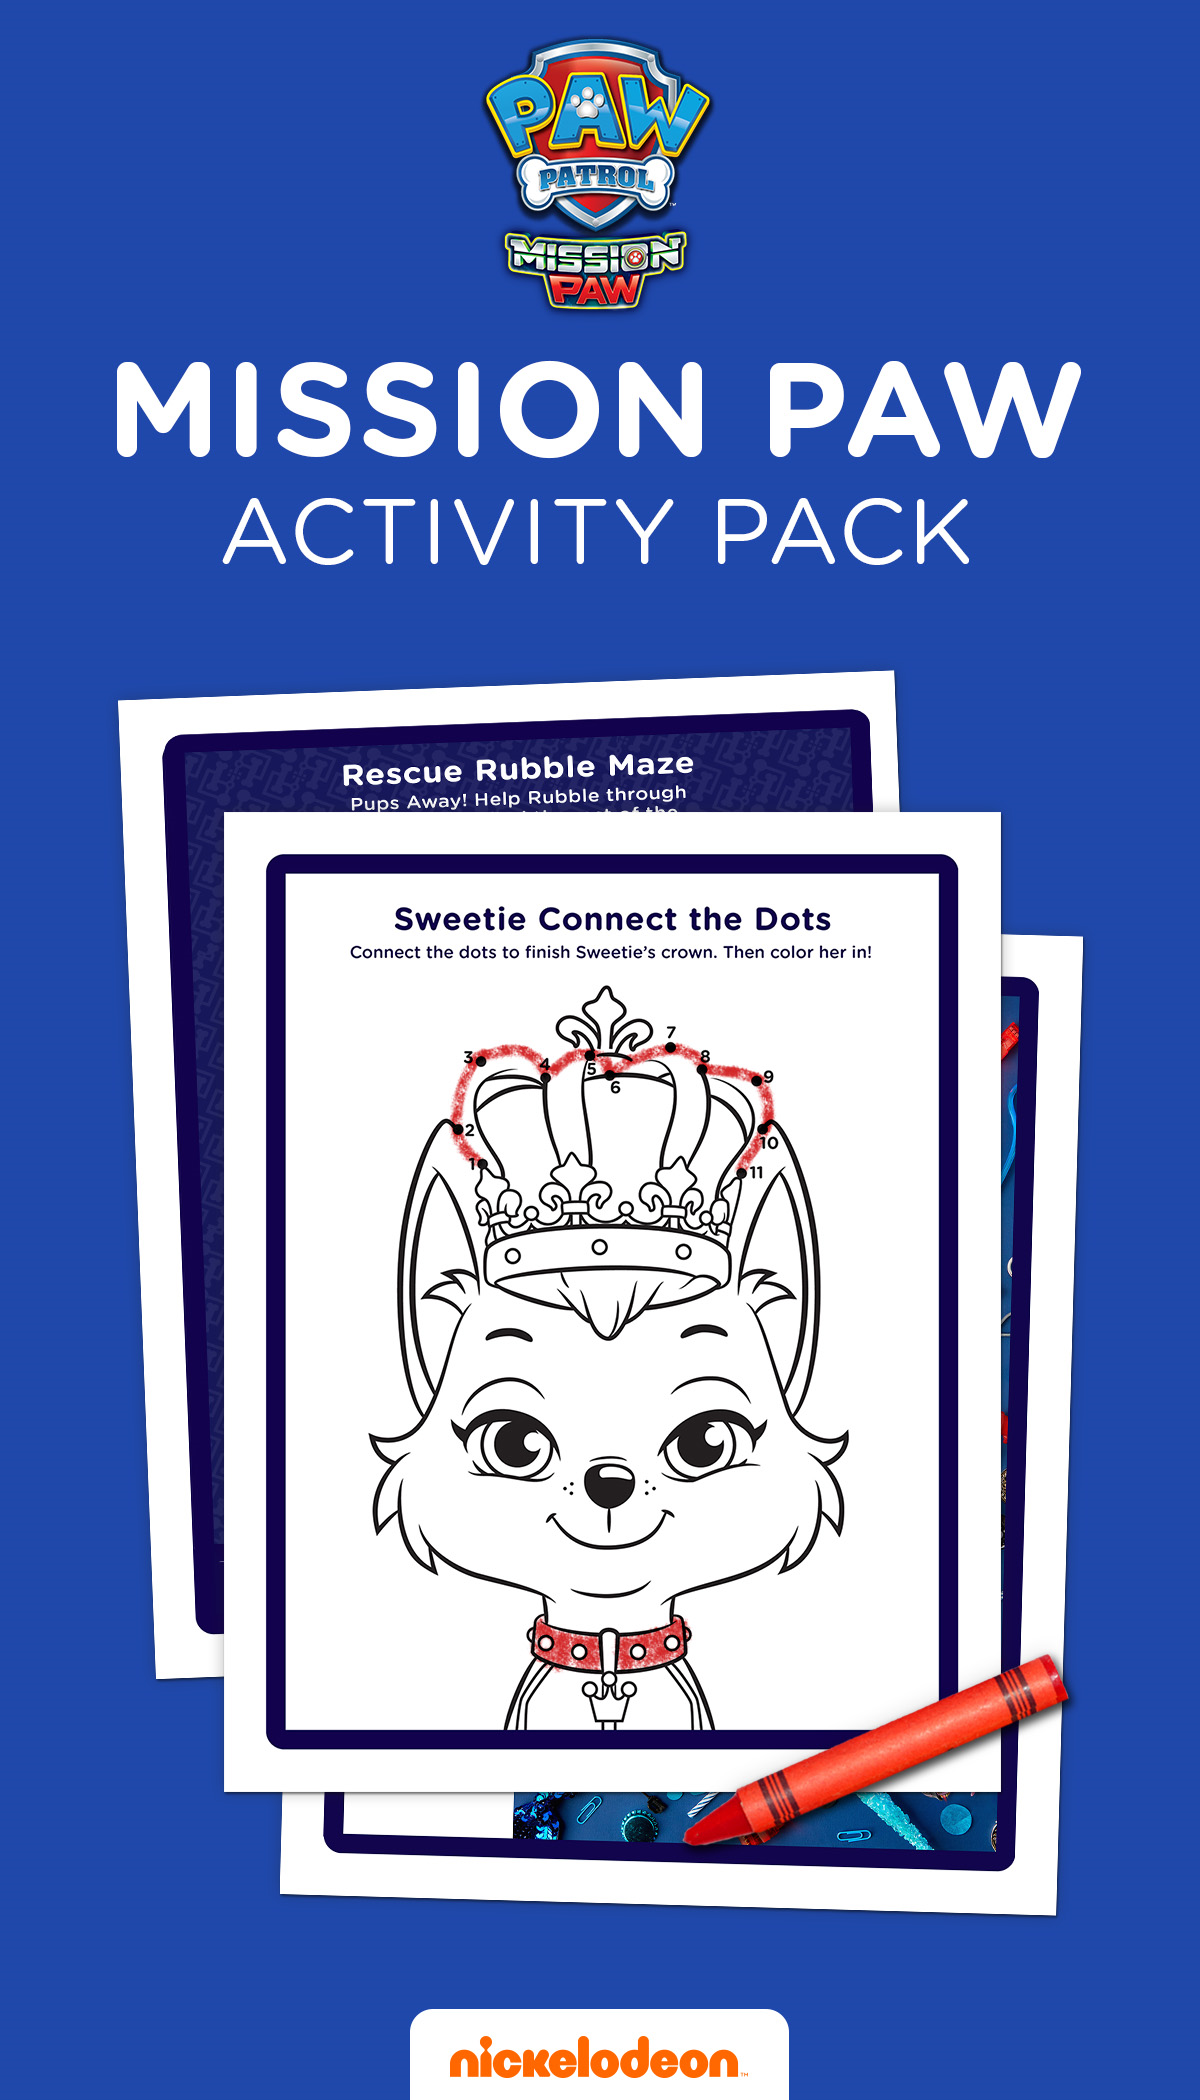 Mission Paw Activity Pack